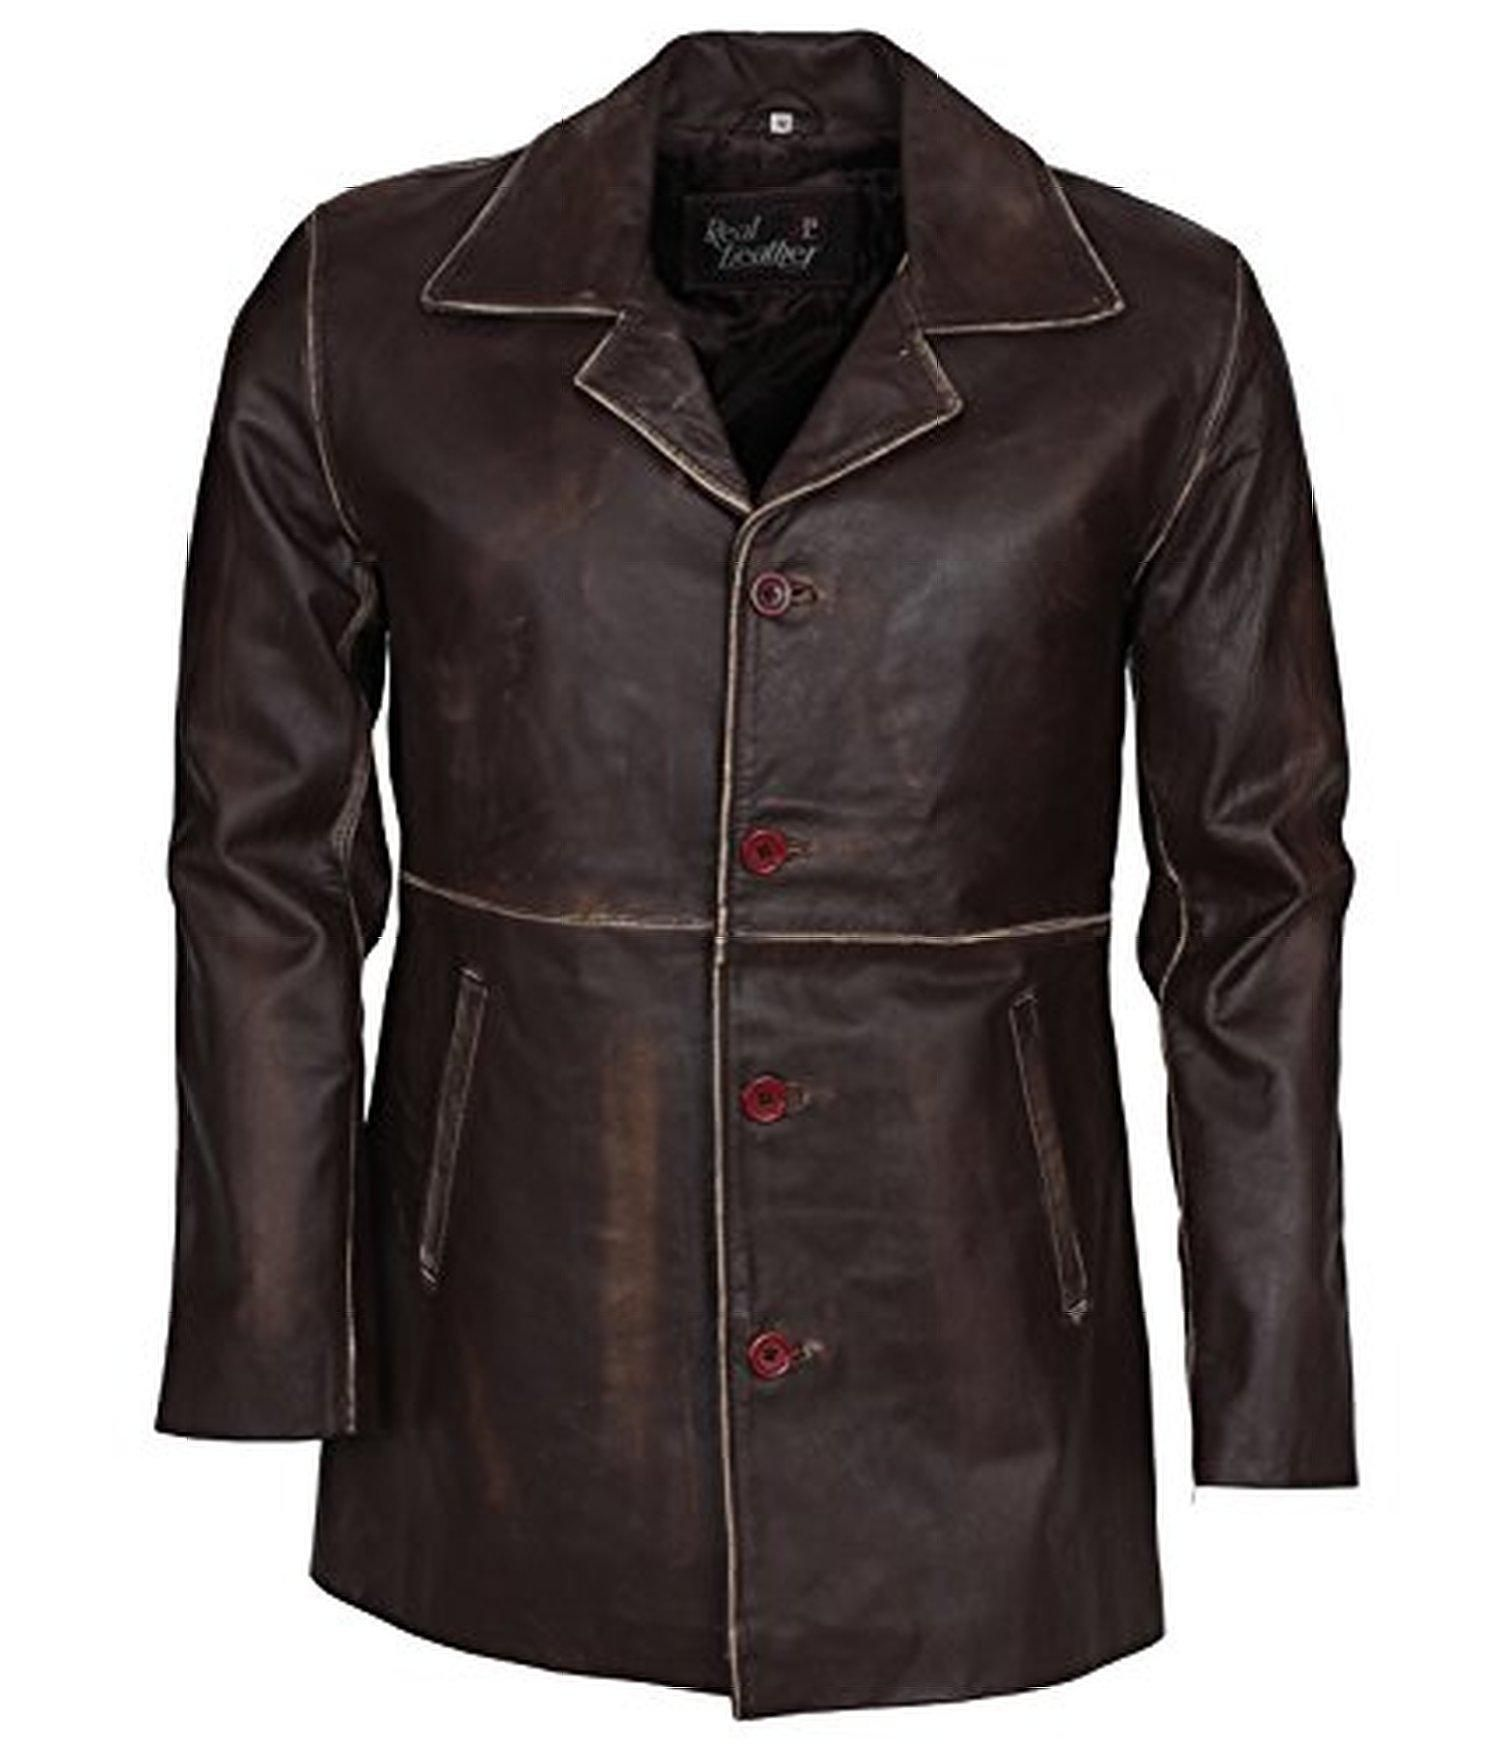 Slimfitleatherjackets Front Button Closure Supernatural Dean Winchester Brown Distressed Italian Leather Coat For Men S 4x Large Celebrities Leather Jacket Mens Leather Coats Best Leather Jackets [ 1752 x 1500 Pixel ]